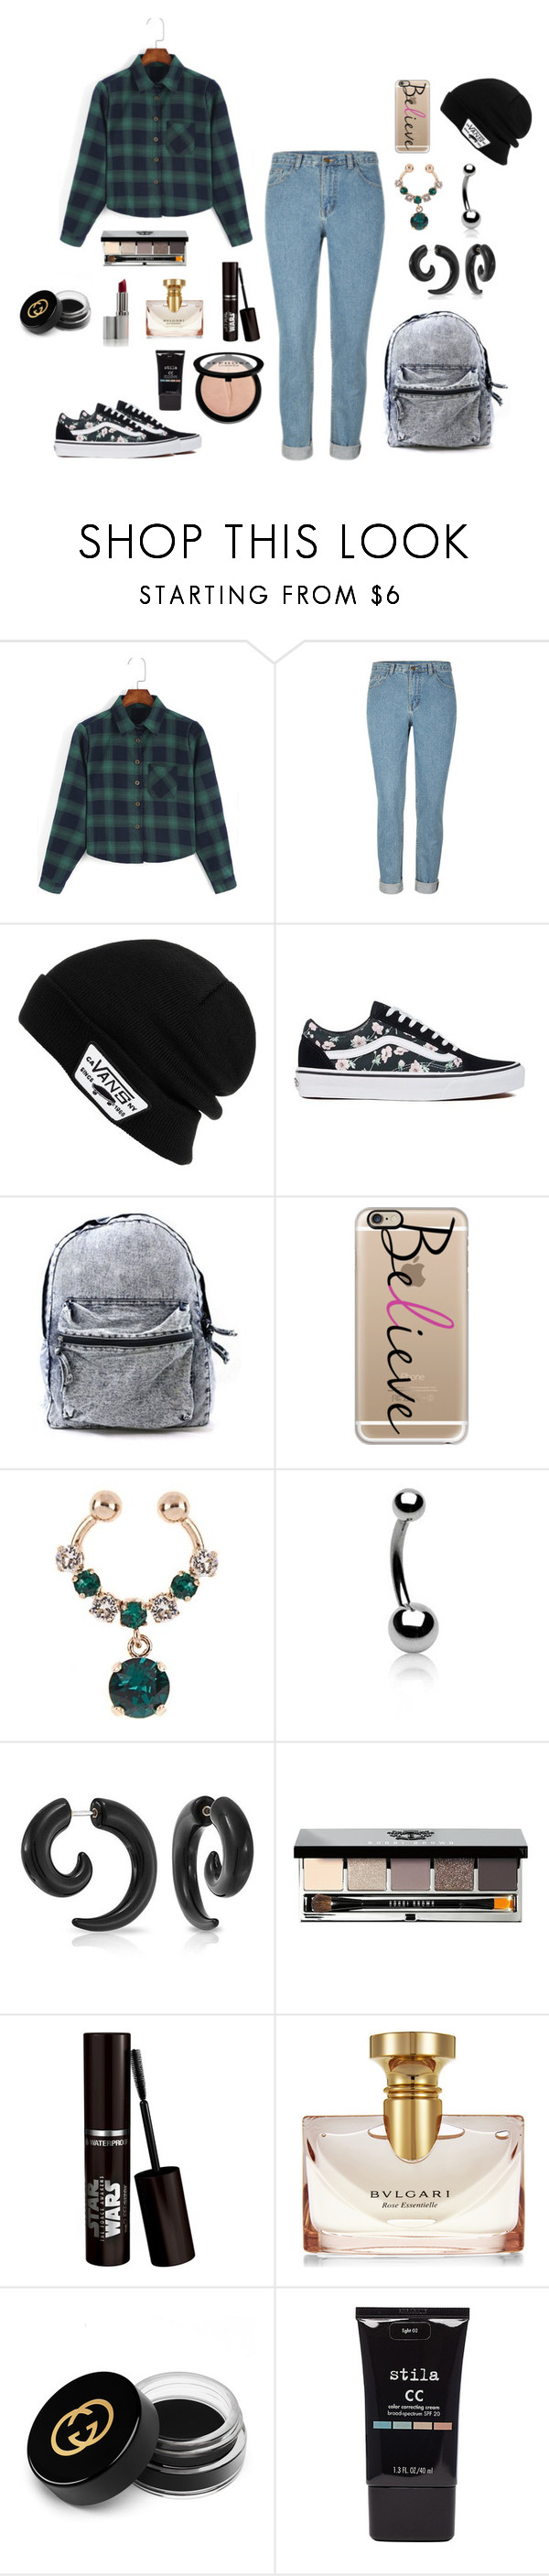 """""""Untitled #667"""" by nestor-ana ❤ liked on Polyvore featuring Vans, Casetify, Givenchy, Bling Jewelry, Bobbi Brown Cosmetics, Bulgari, Gucci, Stila and Sephora Collection"""